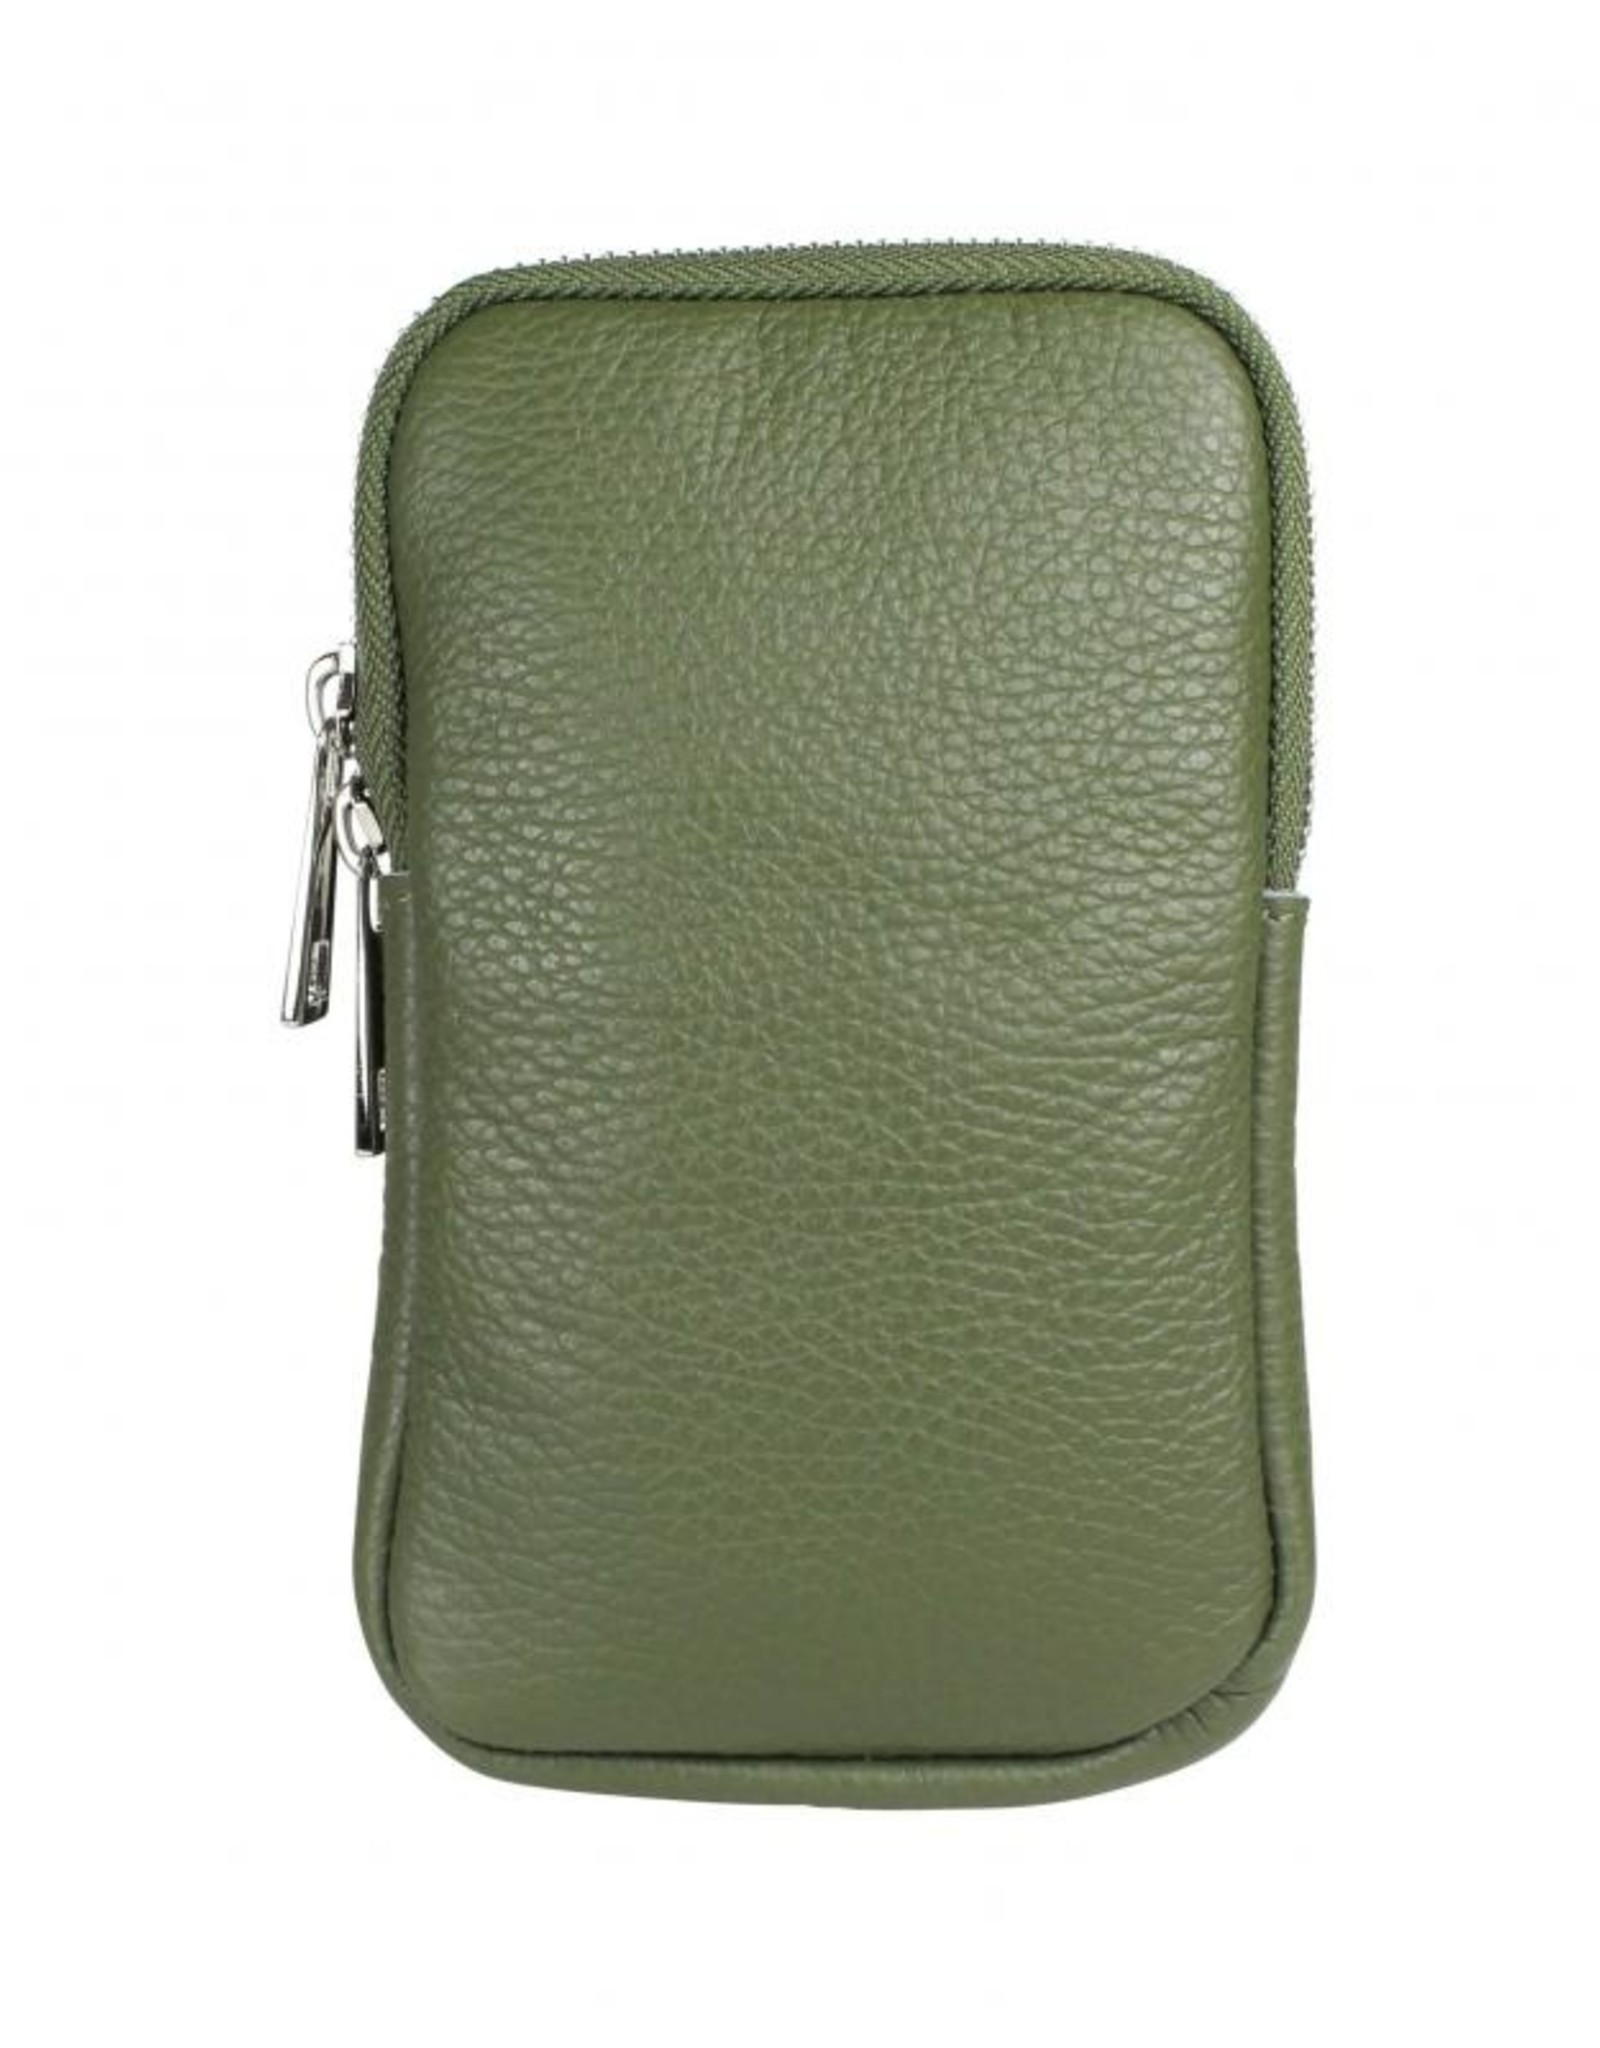 Call Me Up Leather - Groen (zilver)